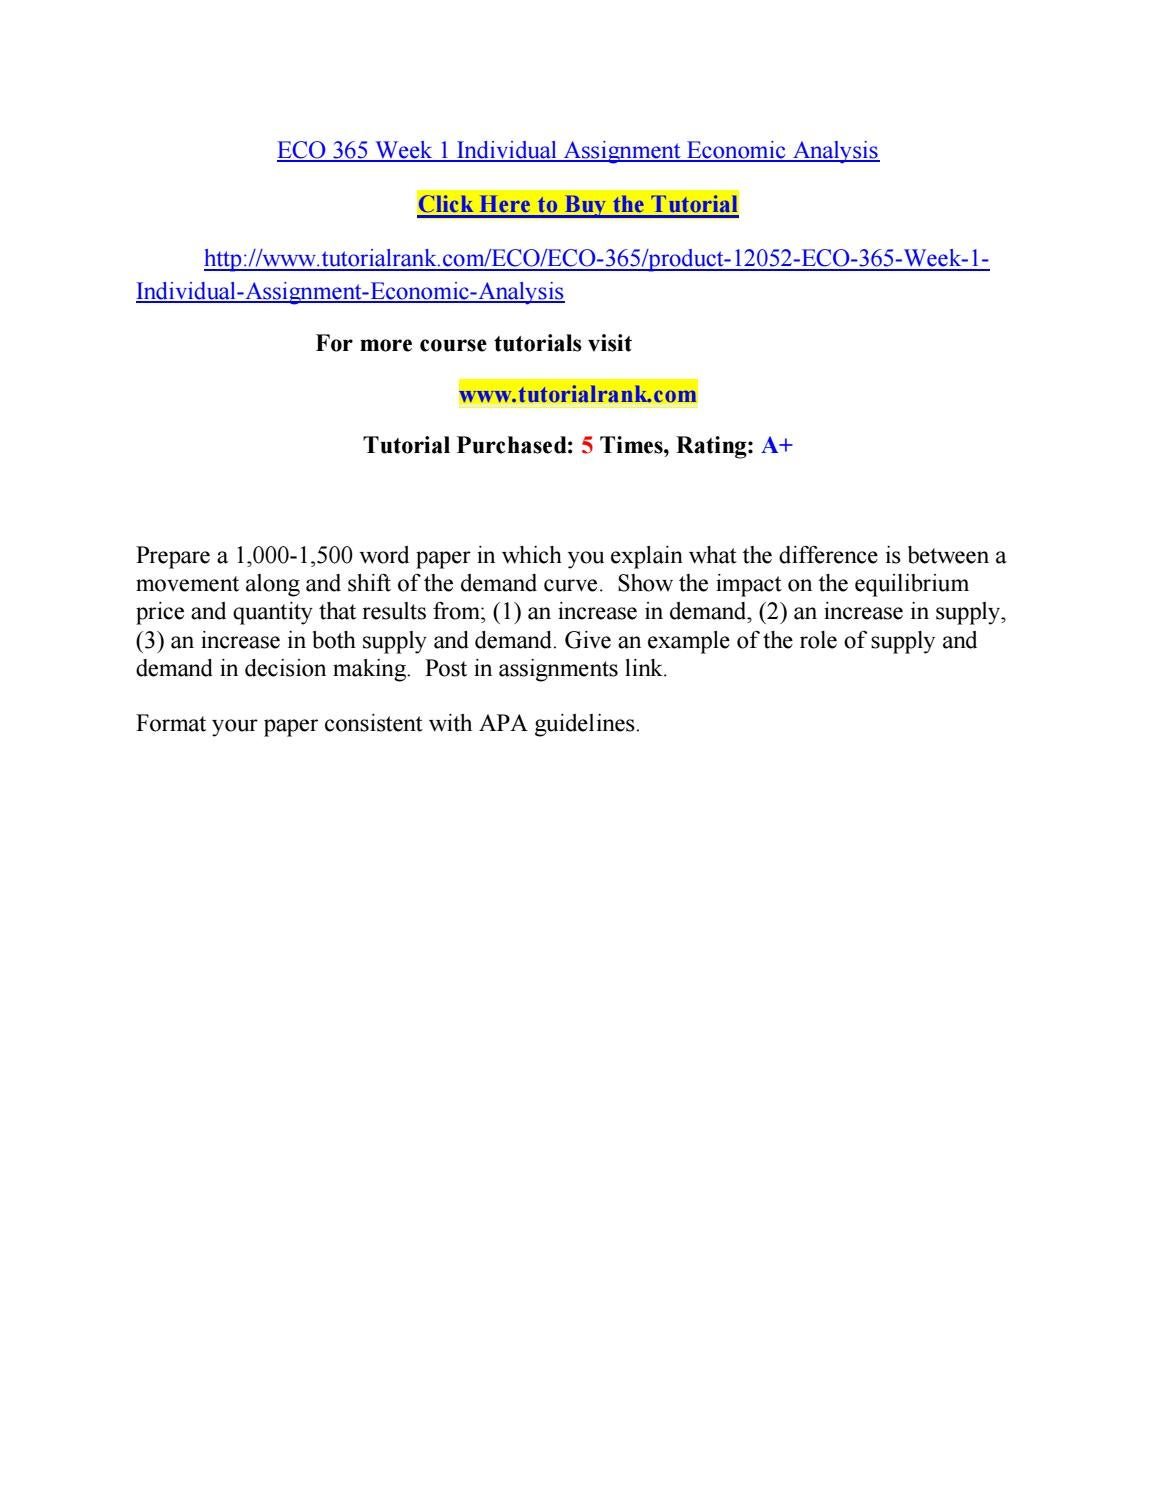 Term paper help software for beginners